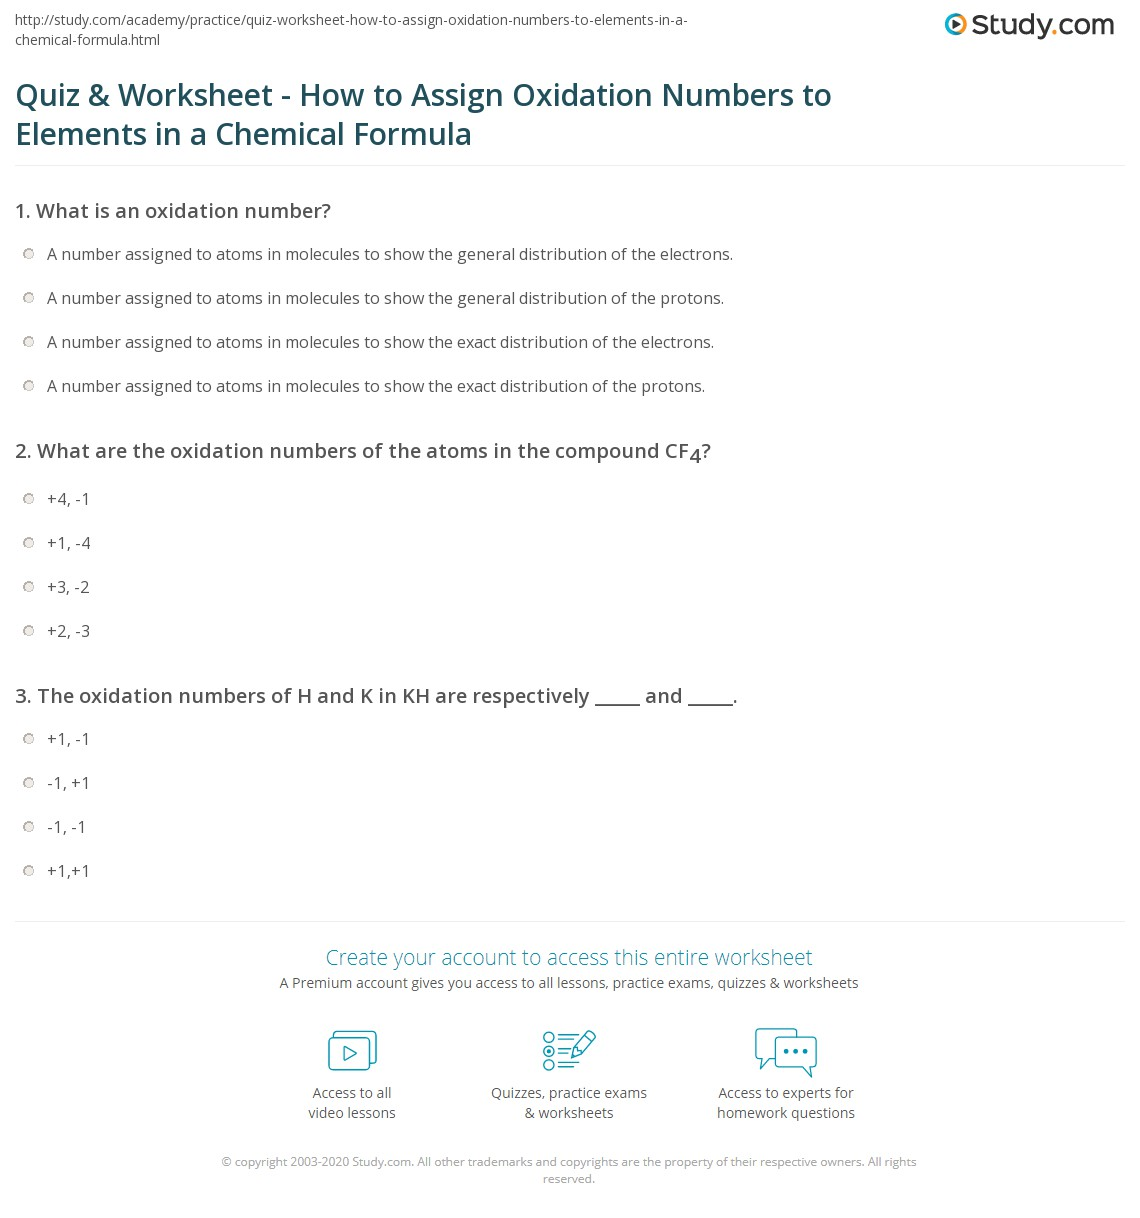 Uncategorized Assigning Oxidation Numbers Worksheet quiz worksheet how to assign oxidation numbers elements in print assigning a chemical formula worksheet